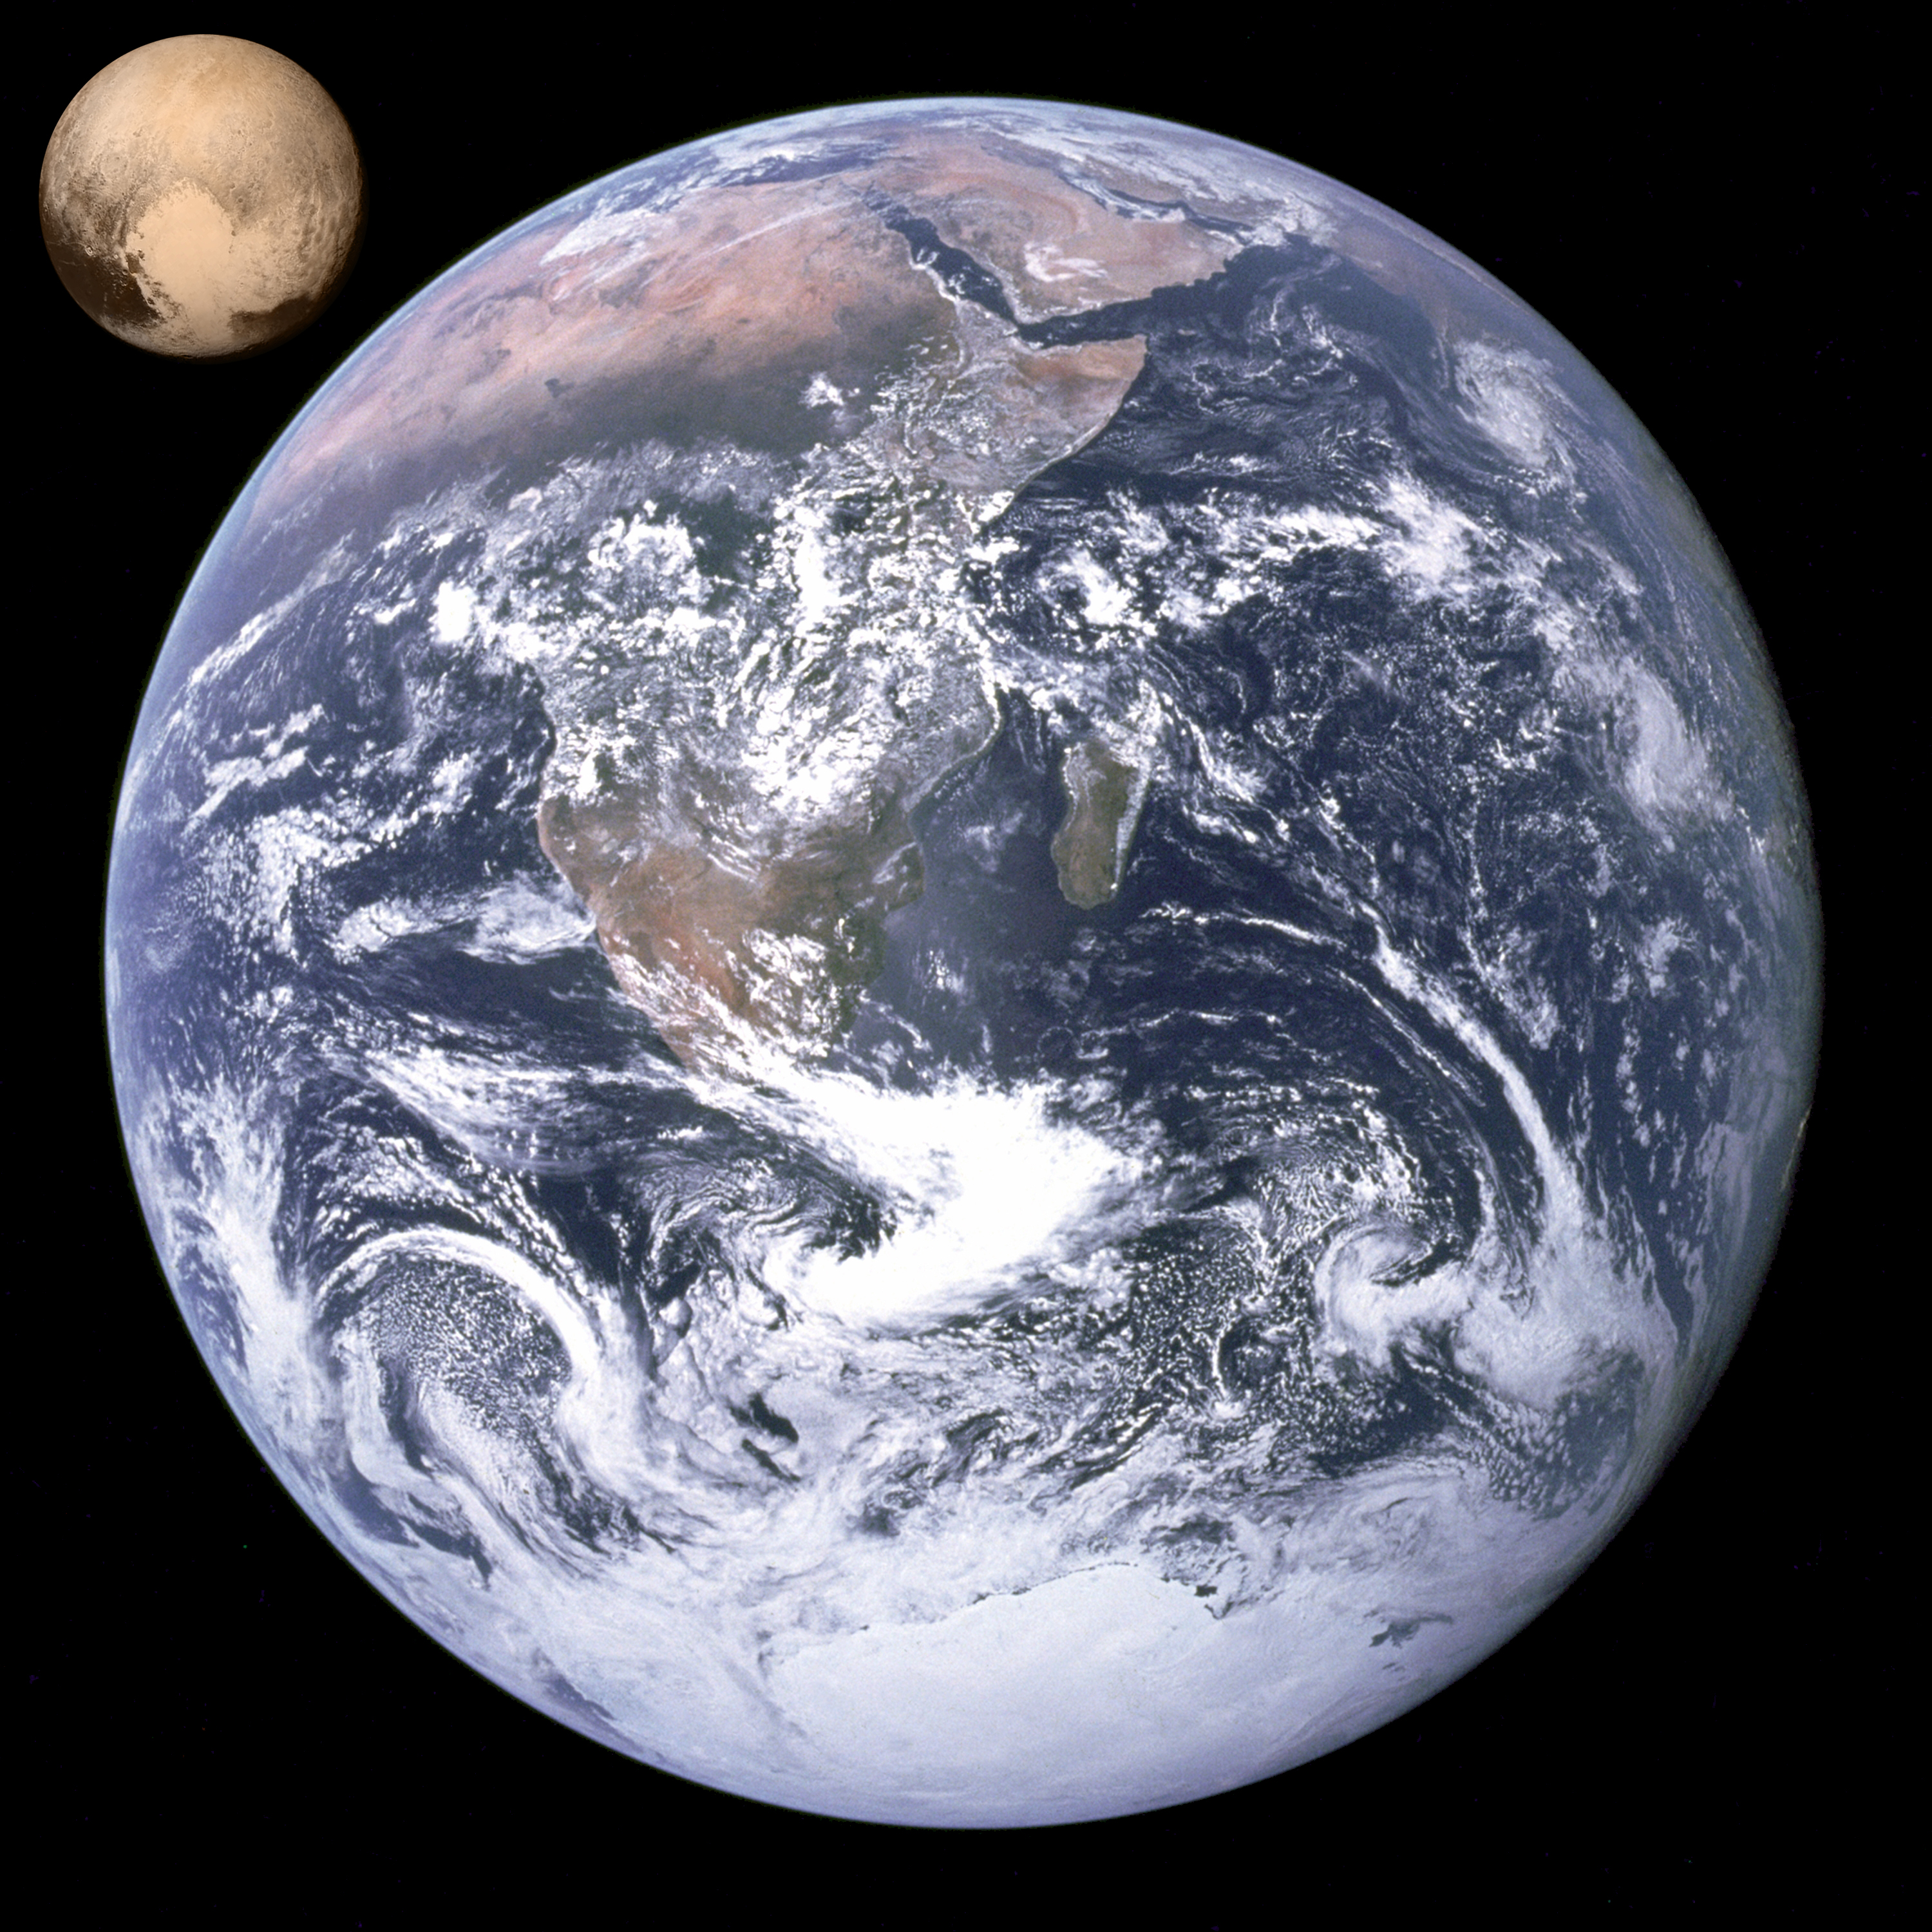 Difference between Earth and Pluto